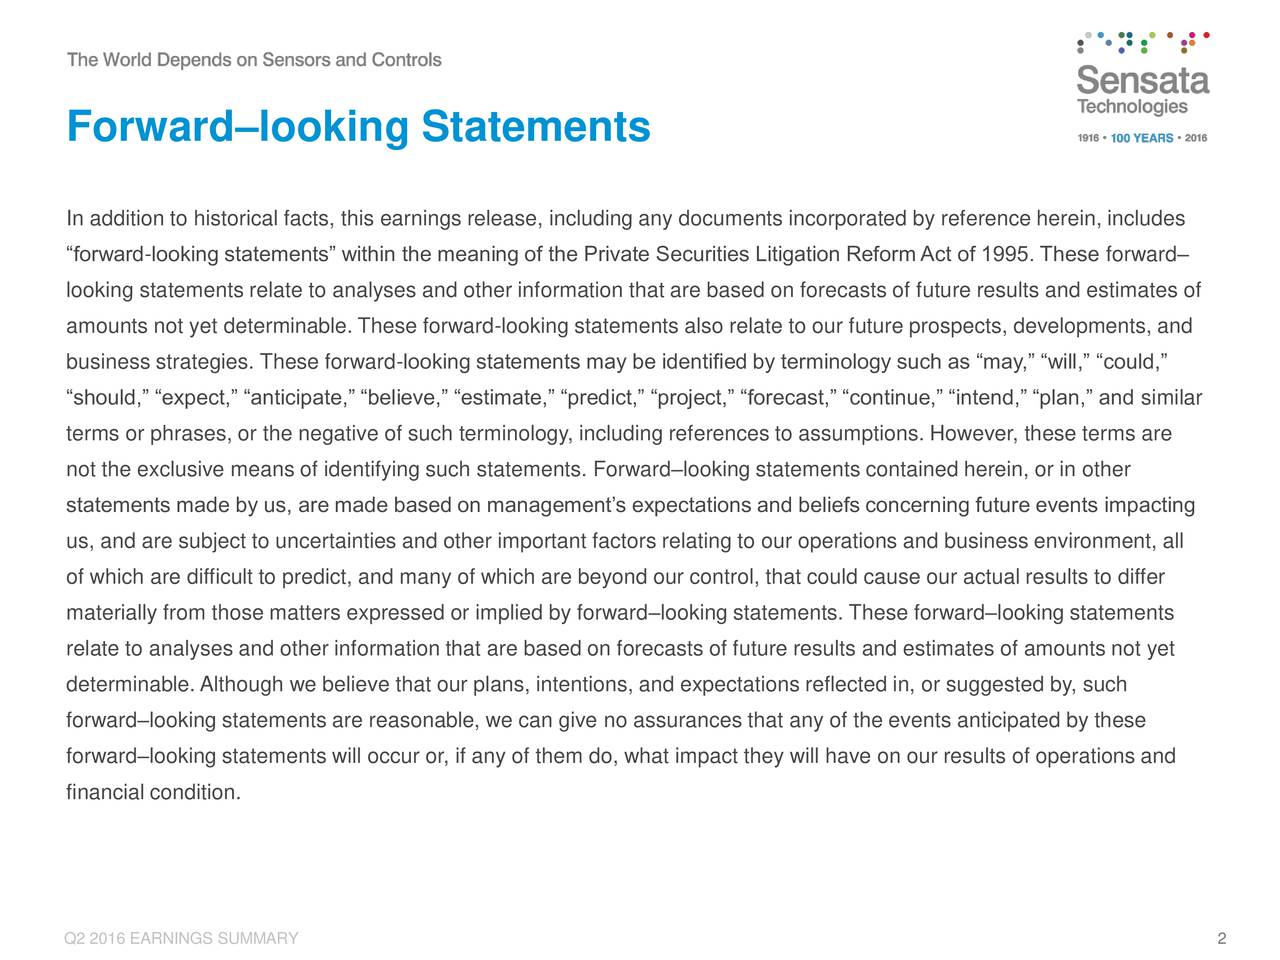 In addition to historical facts, this earnings release, including any documents incorporated by reference herein, includes forward-looking statements within the meaning of the Private Securities Litigation Reform Act of 1995. These forward looking statements relate to analyses and other information that are based on forecasts of future results and estimates of amounts not yet determinable. These forward-looking statements also relate to our future prospects, developments, and business strategies. These forward-looking statements may be identified by terminology such as may, will, could, should, expect, anticipate, believe, estimate, predict, project, forecast, continue, intend, plan, and similar terms or phrases, or the negative of such terminology, including references to assumptions. However, these terms are not the exclusive means of identifying such statements. Forwardlooking statements contained herein, or in other statements made by us, are made based on managements expectations and beliefs concerning future events impacting us, and are subject to uncertainties and other important factors relating to our operations and business environment, all of which are difficult to predict, and many of which are beyond our control, that could cause our actual results to differ materially from those matters expressed or implied by forwardlooking statements. These forwardlooking statements relate to analyses and other information that are based on forecasts of future results and estimates of amounts not yet determinable. Although we believe that our plans, intentions, and expectations reflected in, or suggested by, such forwardlooking statements are reasonable, we can give no assurances that any of the events anticipated by these forwardlooking statements will occur or, if any of them do, what impact they will have on our results of operations and financial condition. Q2 2016 EARNINGS SUMMARY 2